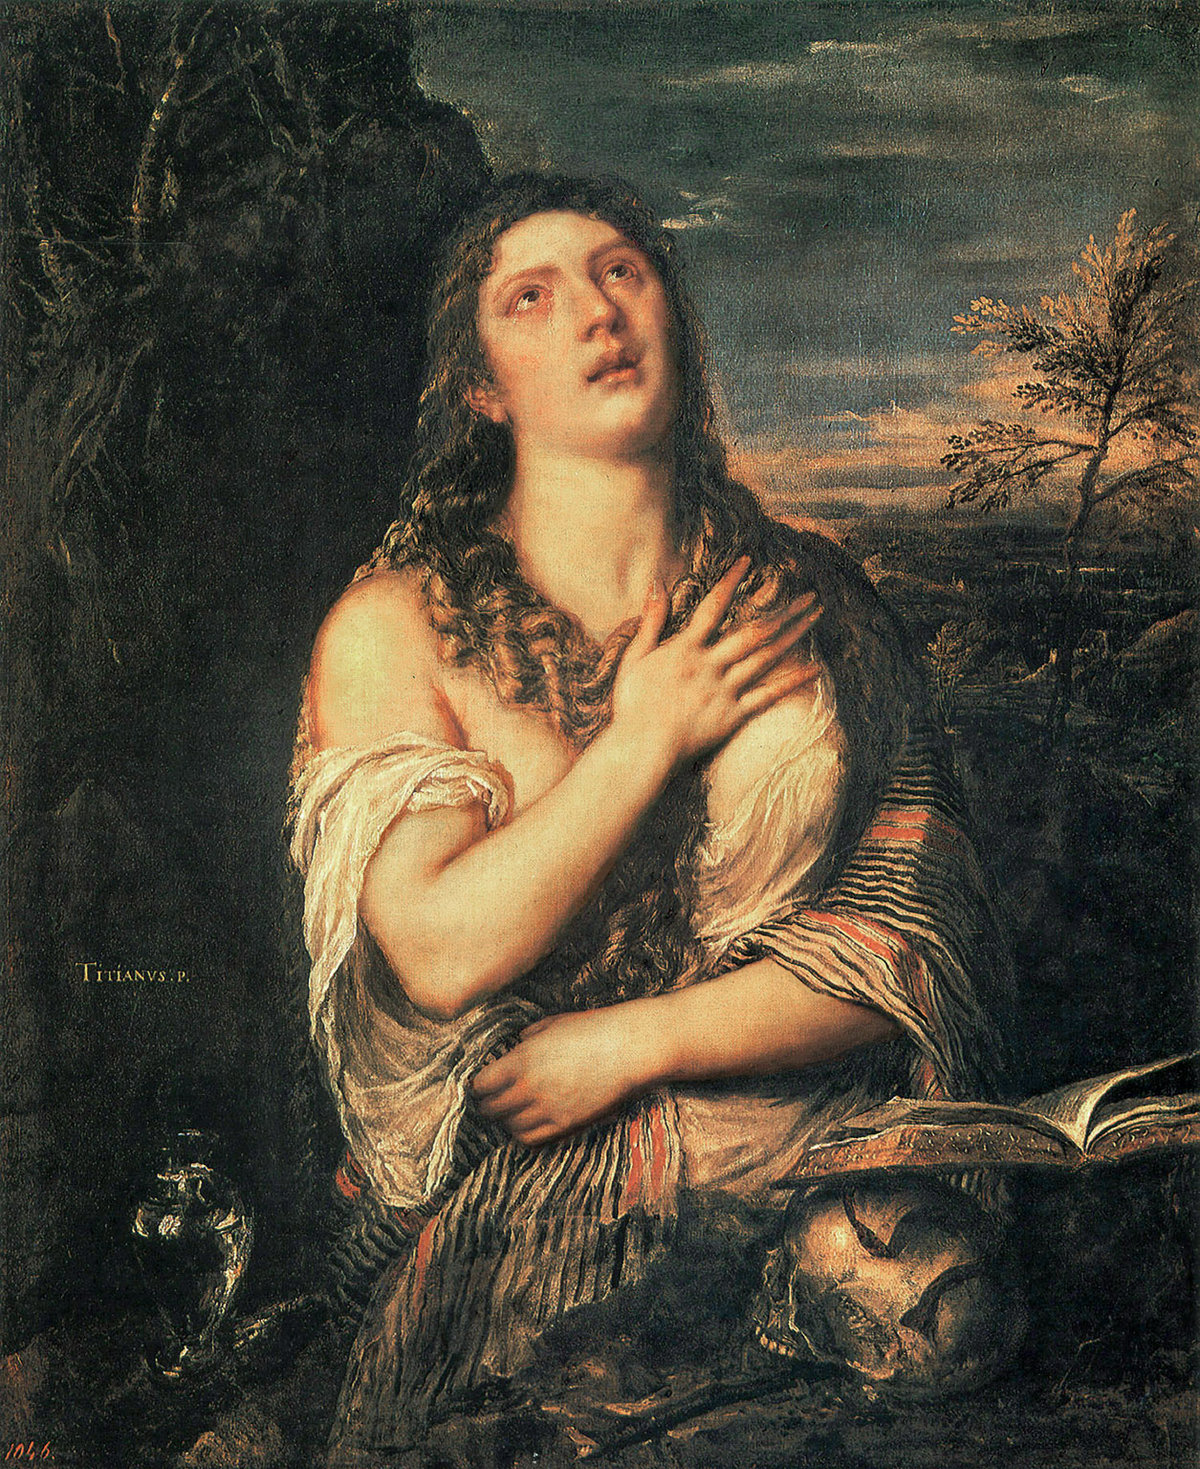 The Mighty Highlander - Titian